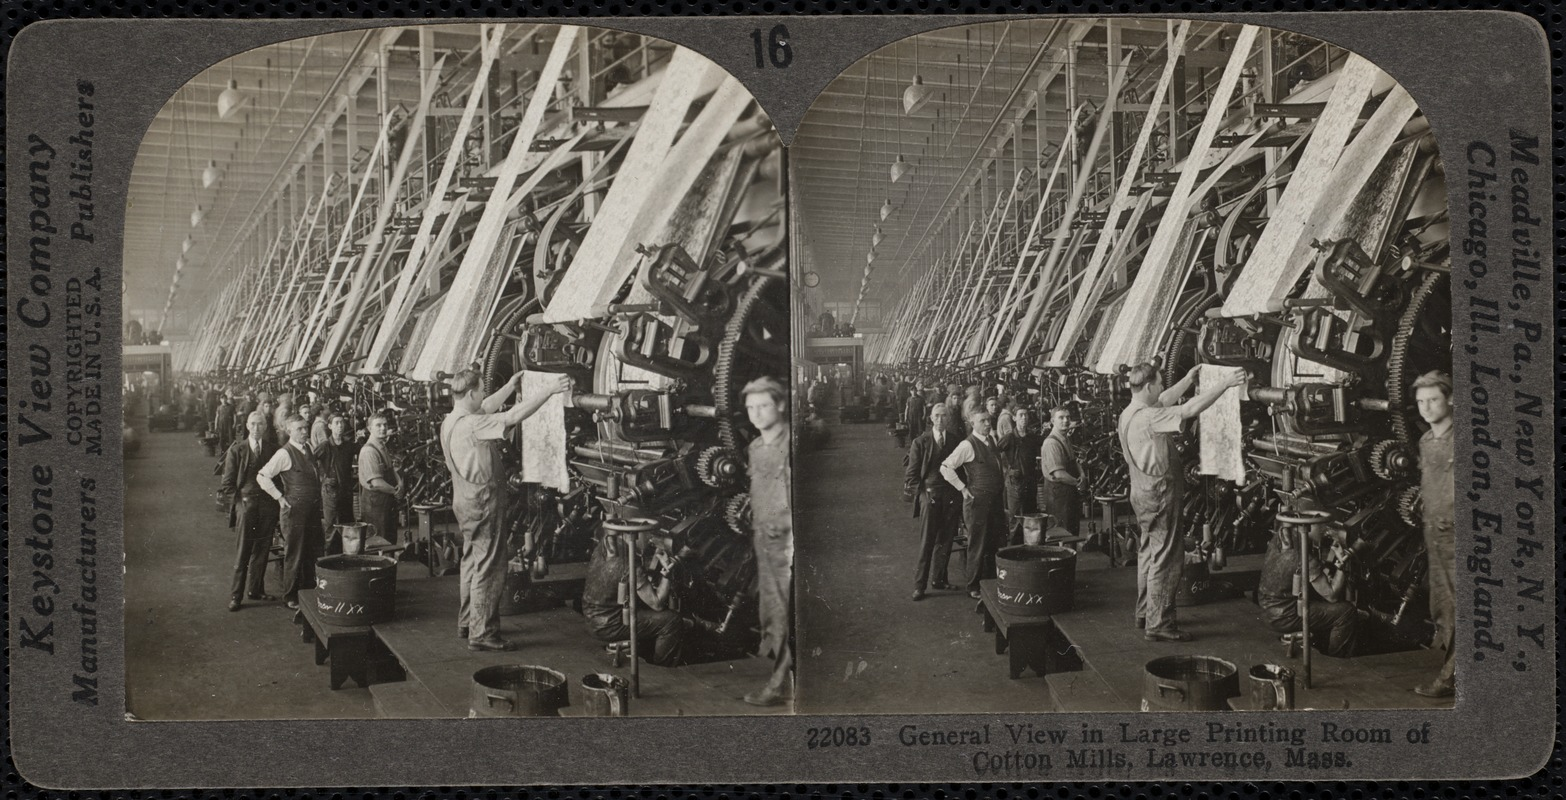 View of printing room, cotton mills, Lawrence, Mass.